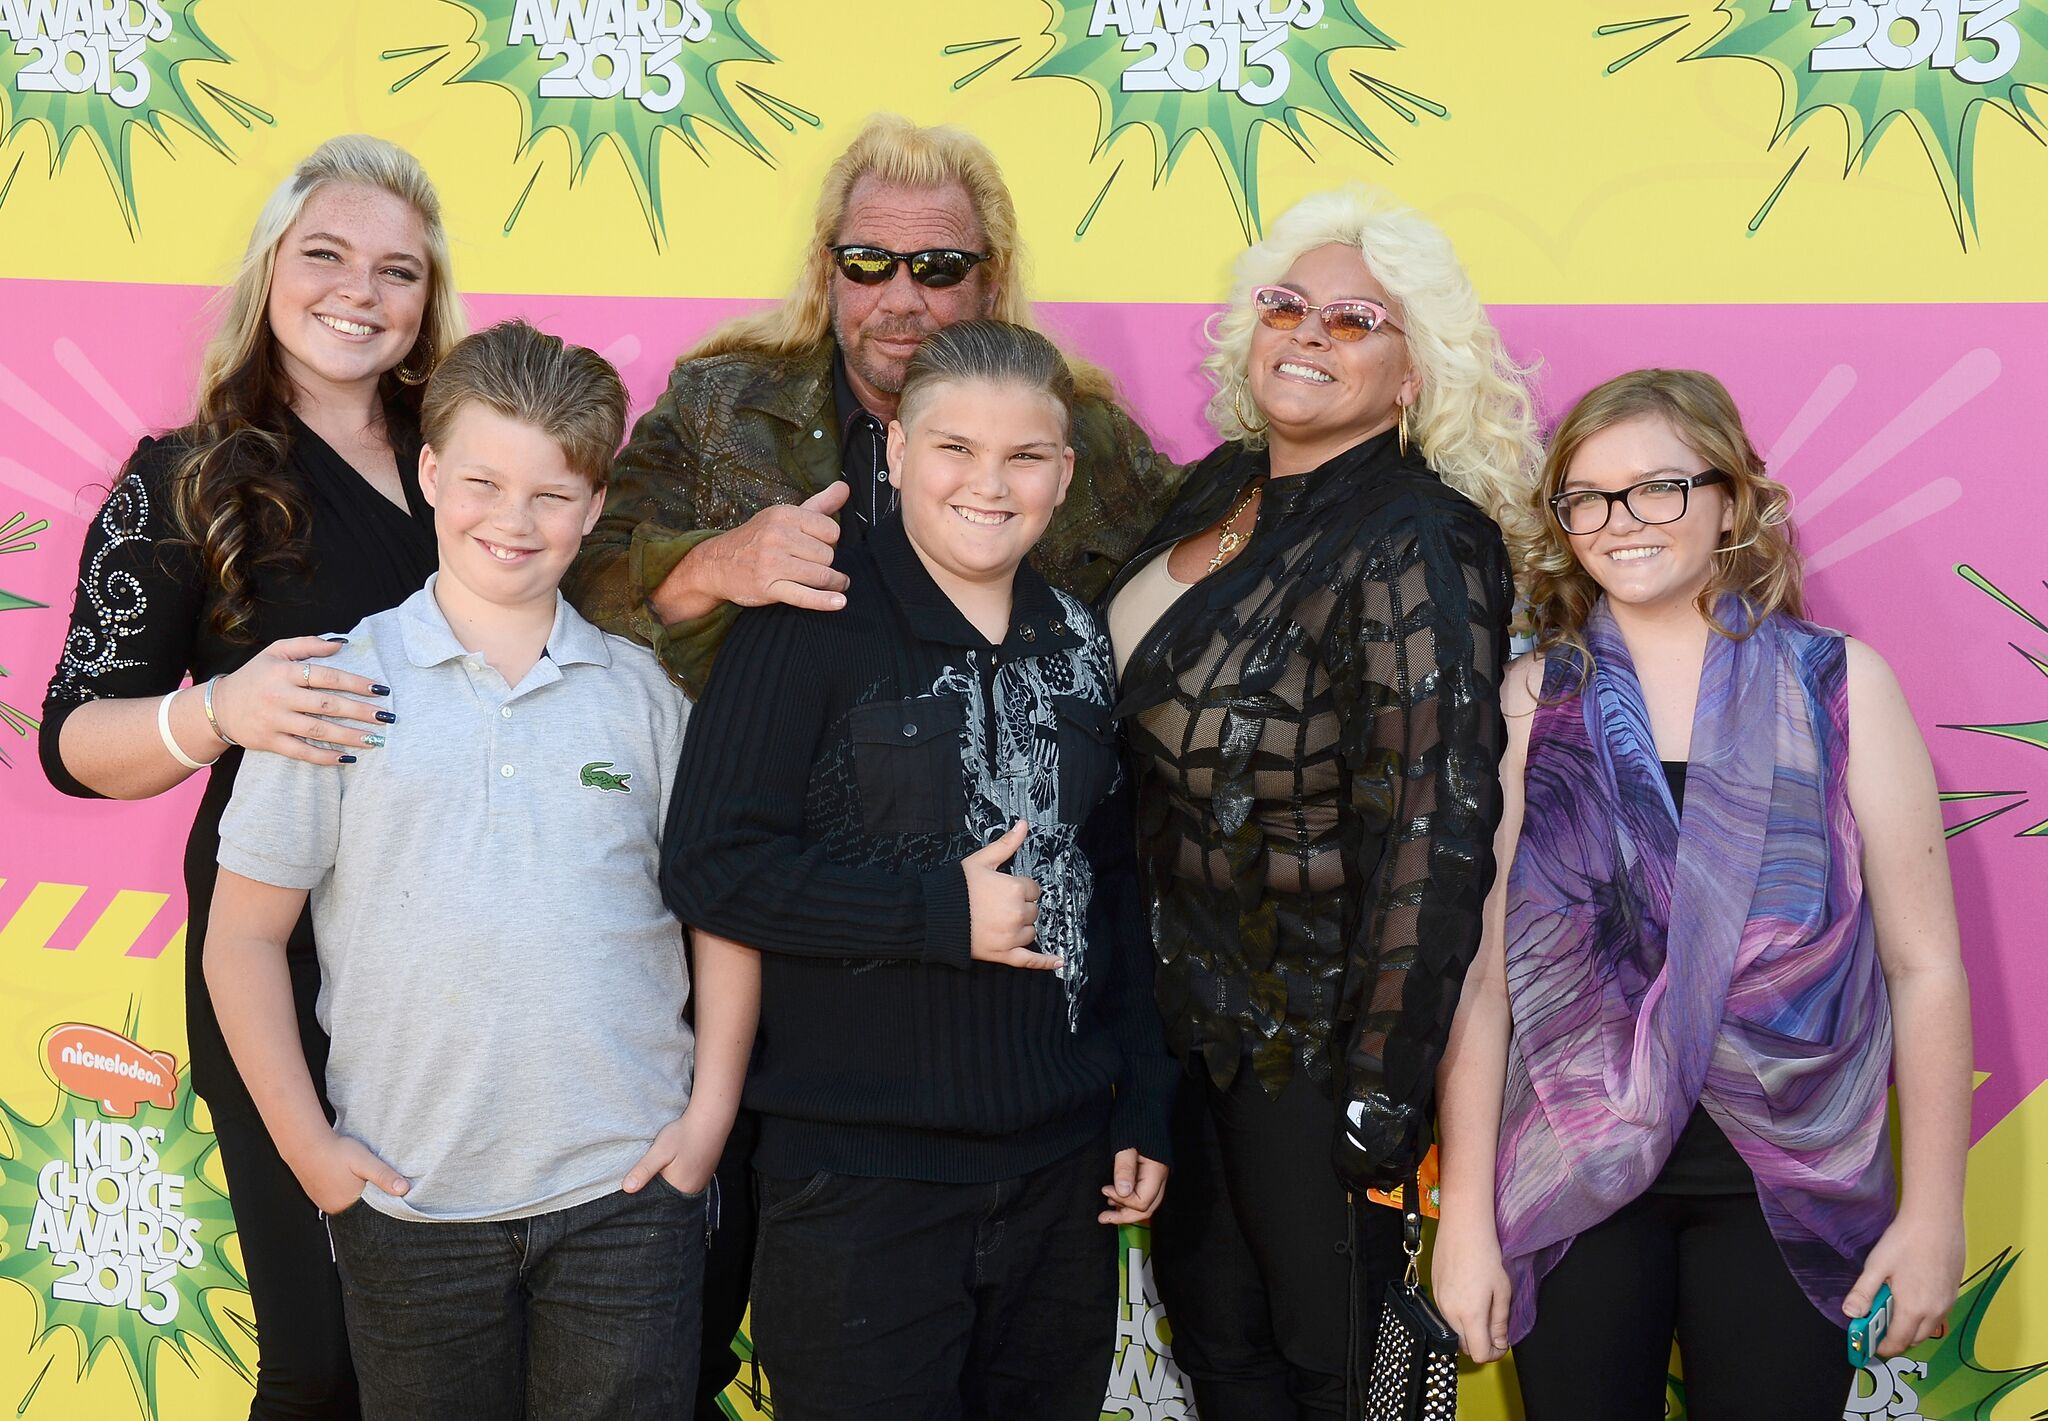 Duane 'Dog' Chapman (C) and family arrive at Nickelodeon's 26th Annual Kids' Choice Awards | Getty Images / Global Images Ukraine